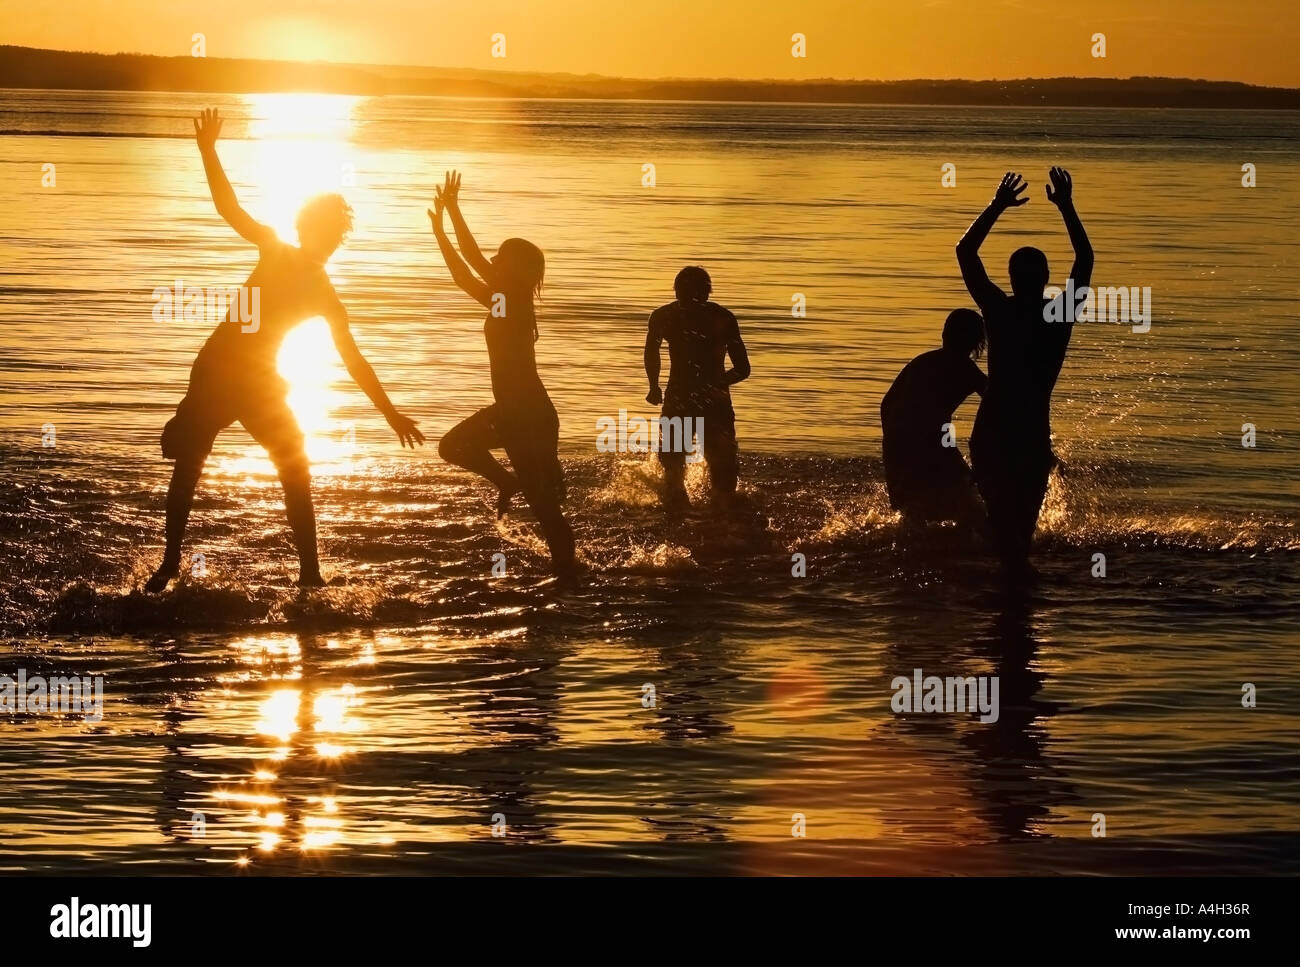 Swimming Suite Stock Images  Royalty Free Images   Vectors     Vacation Myrtle Beach